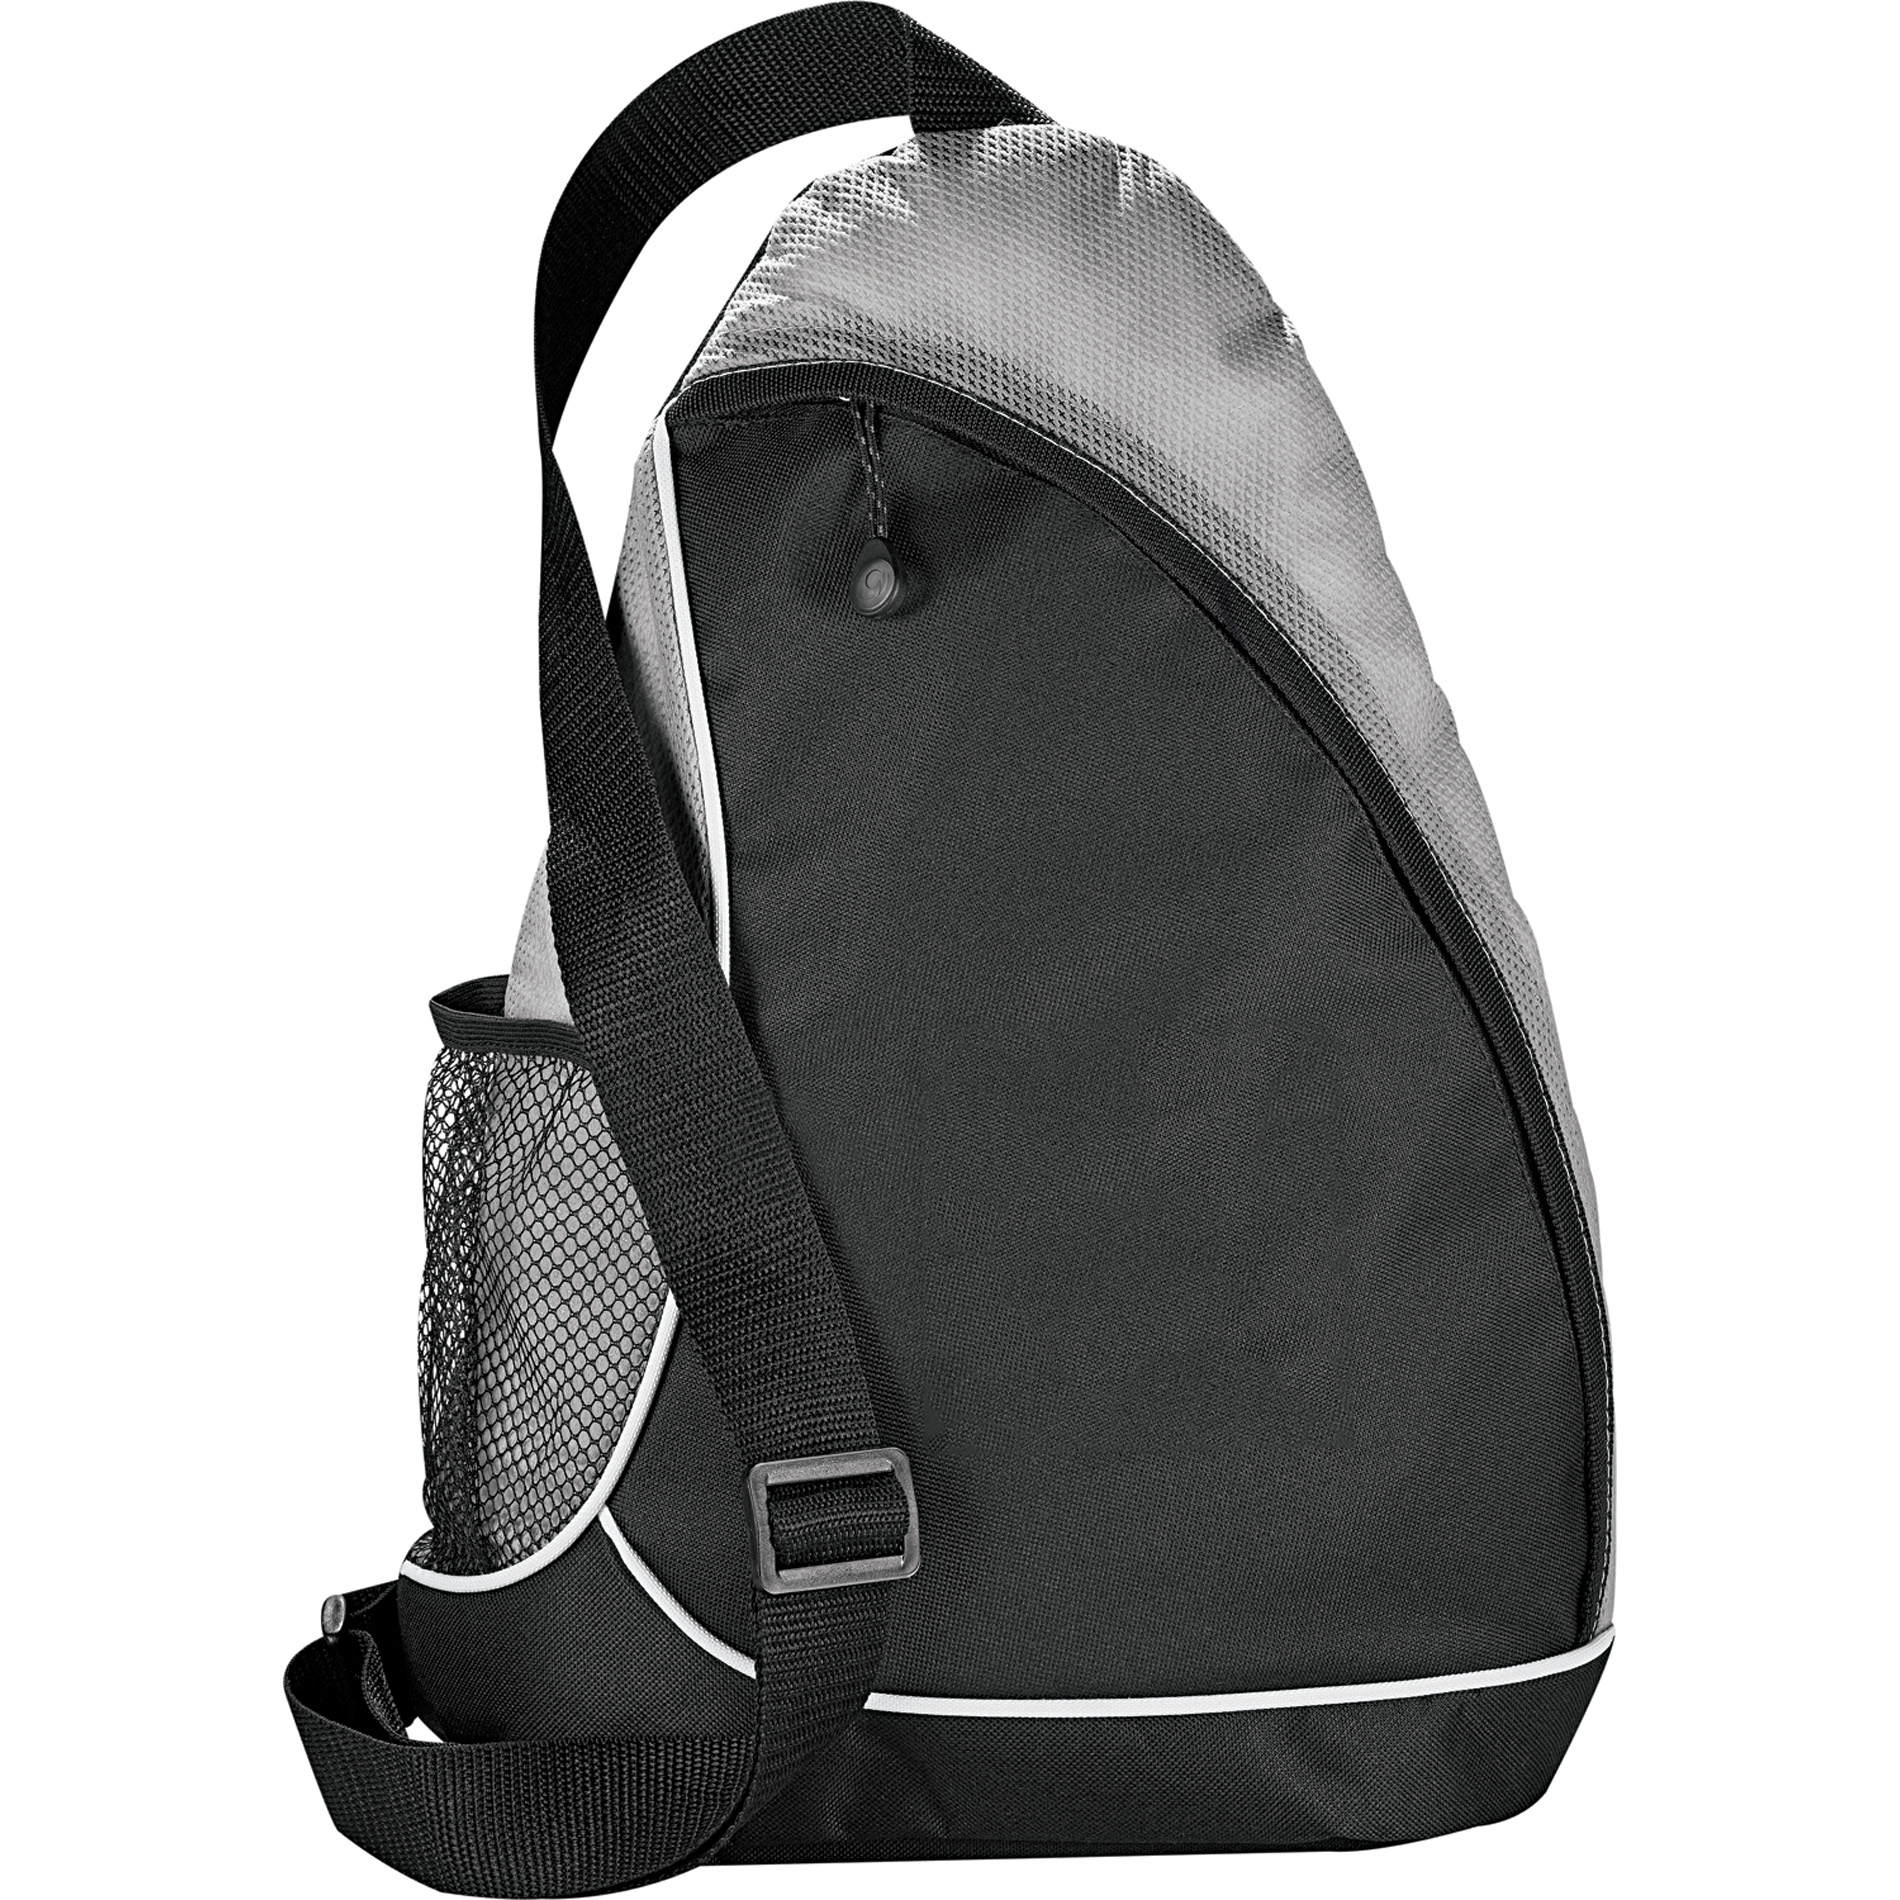 LEEDS 3251-98 - Sling Shot Sling Backpack